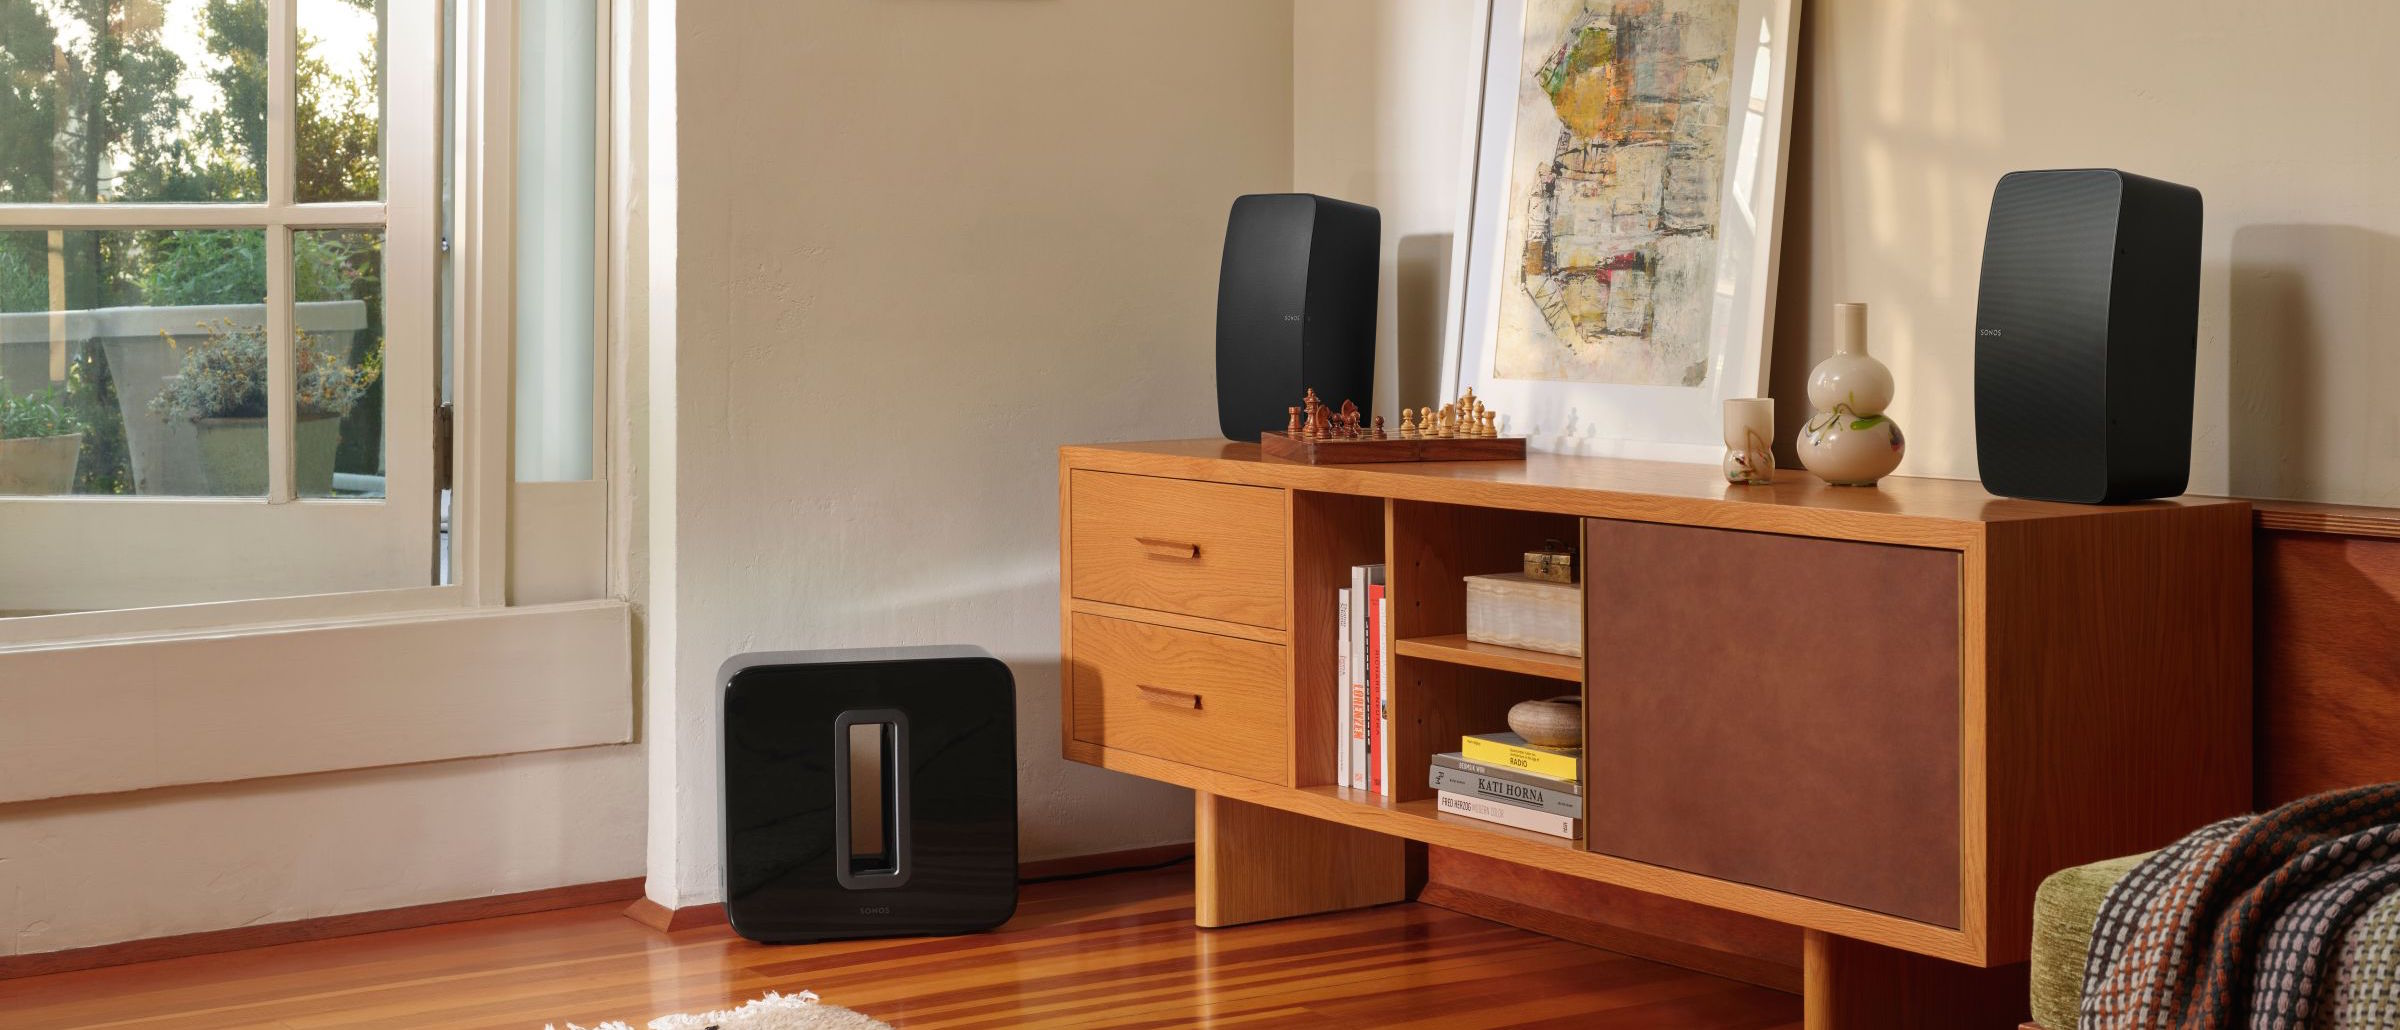 Sonos Sub - Streaming Subwoofer - HiFi Forum